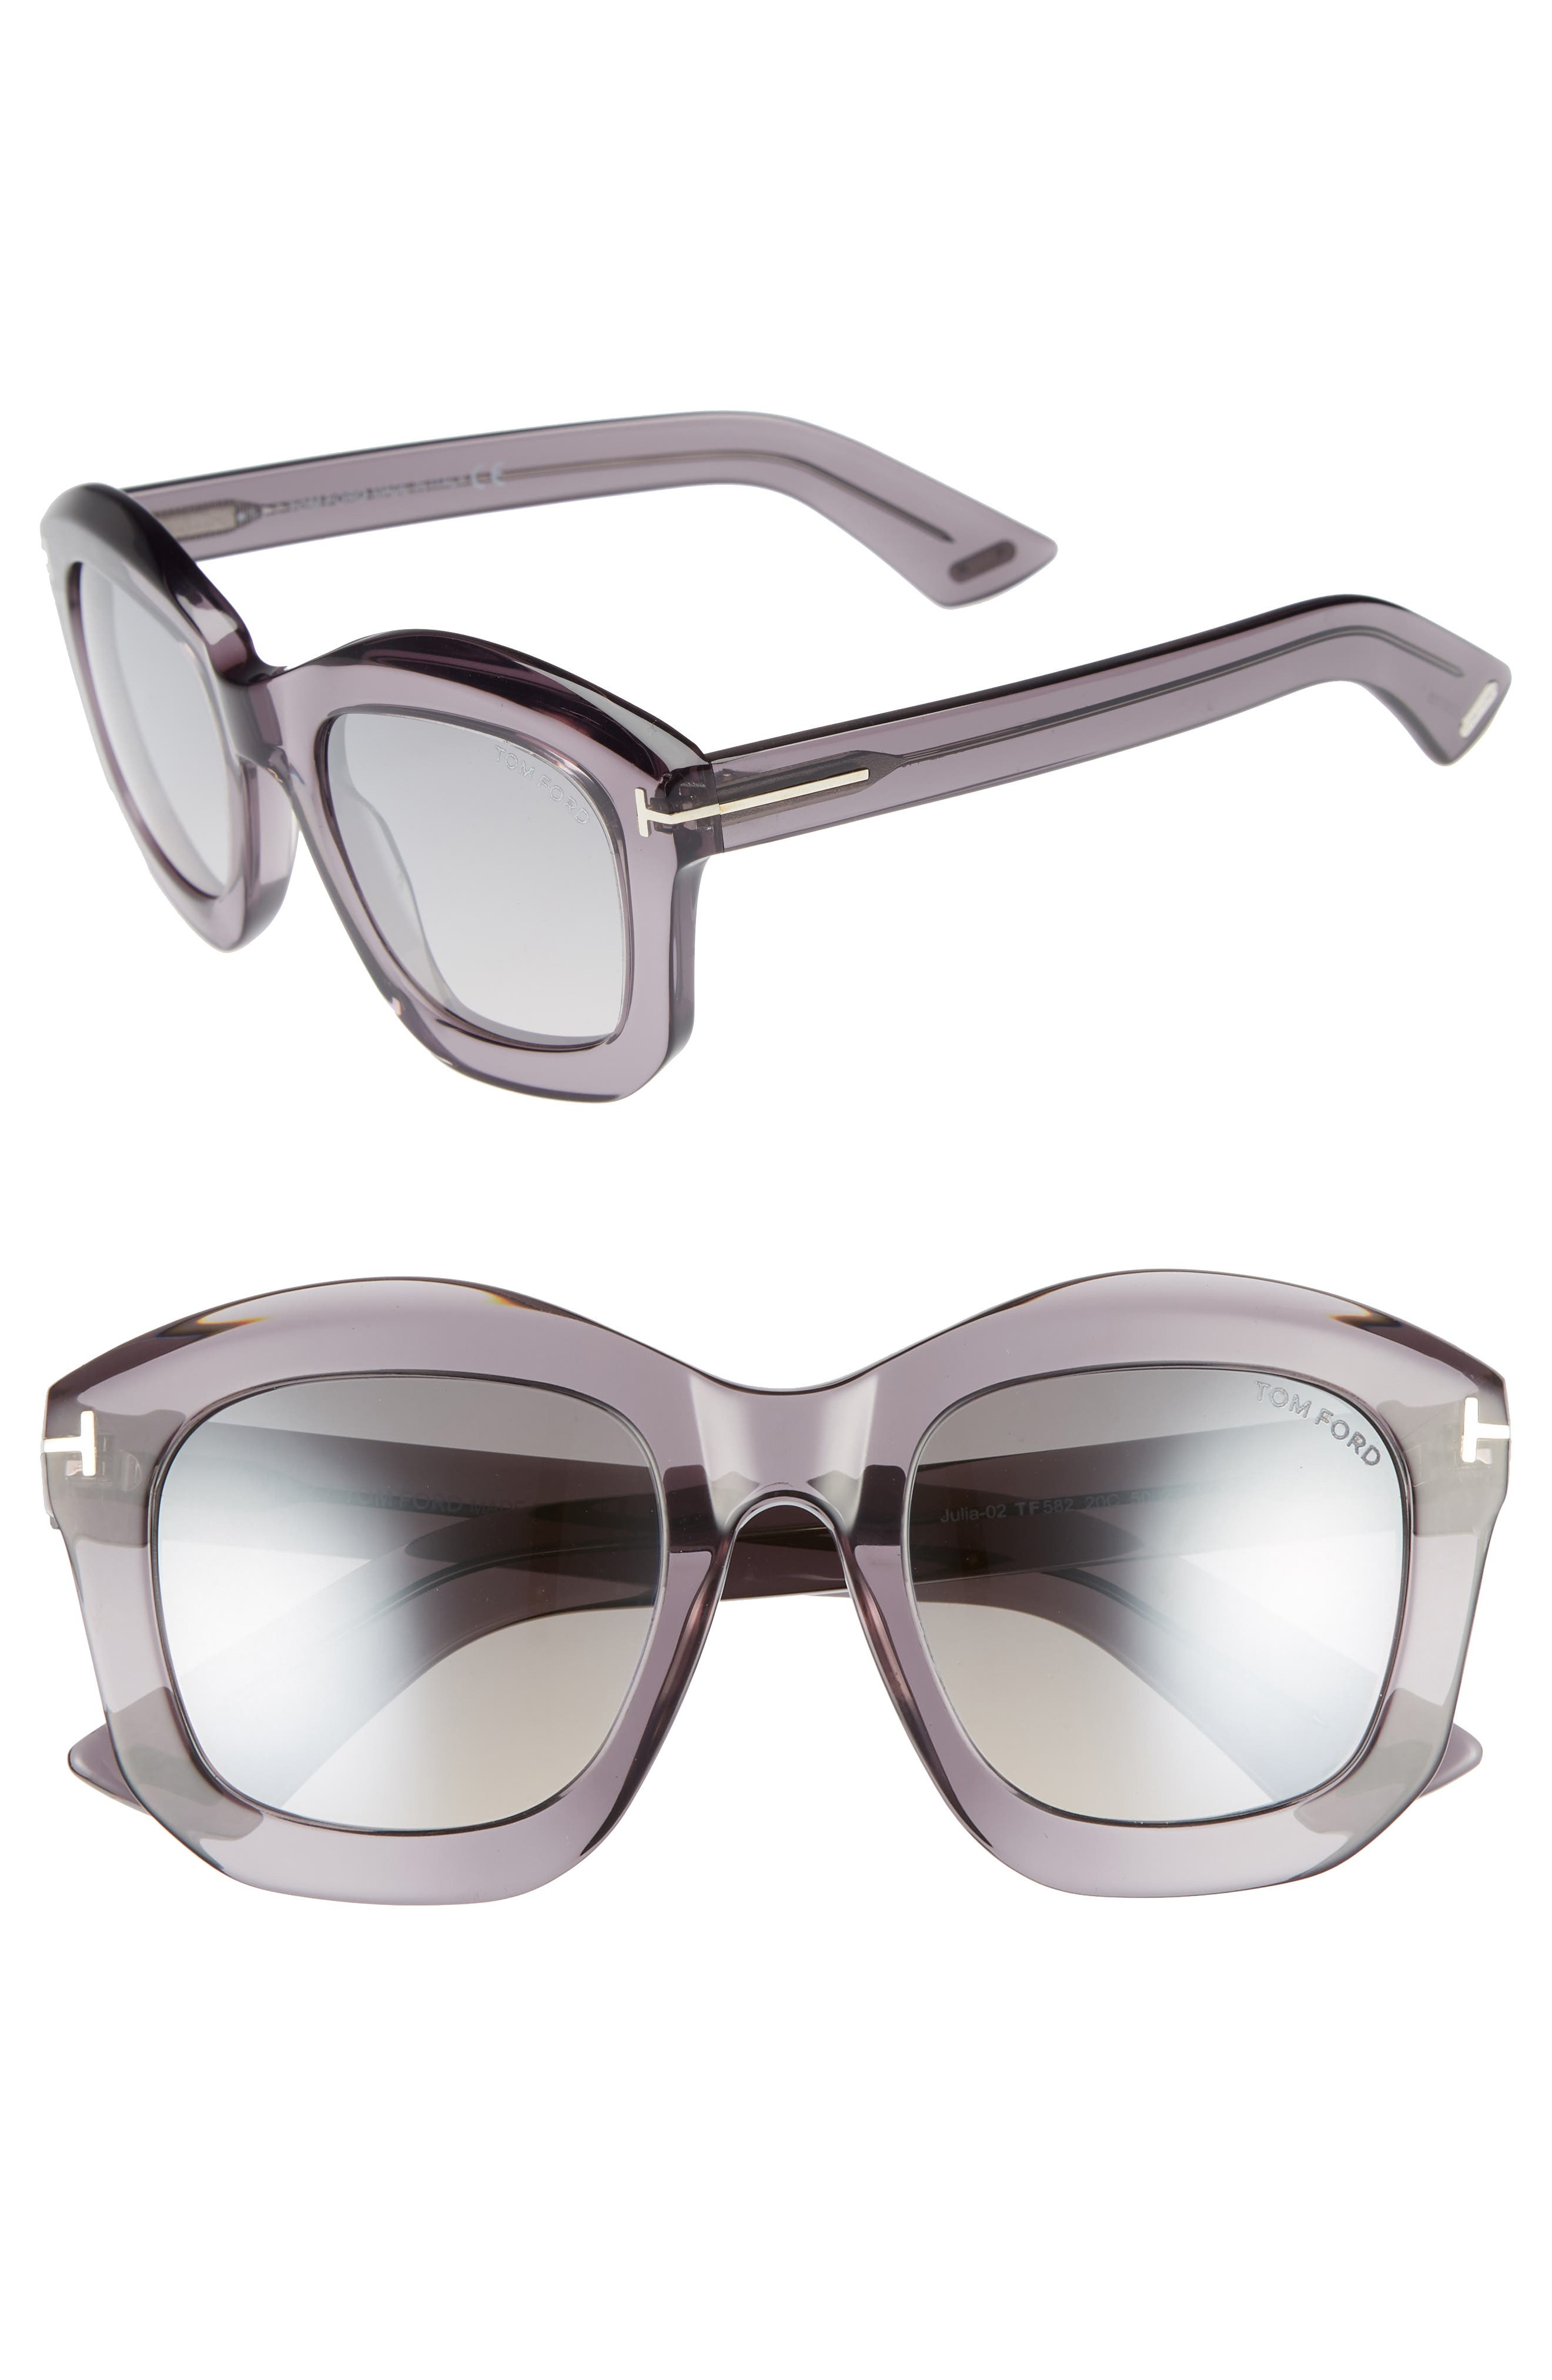 Tom Ford Julia 50Mm Gradient Square Sunglasses - Grey Acetate/ Palladium